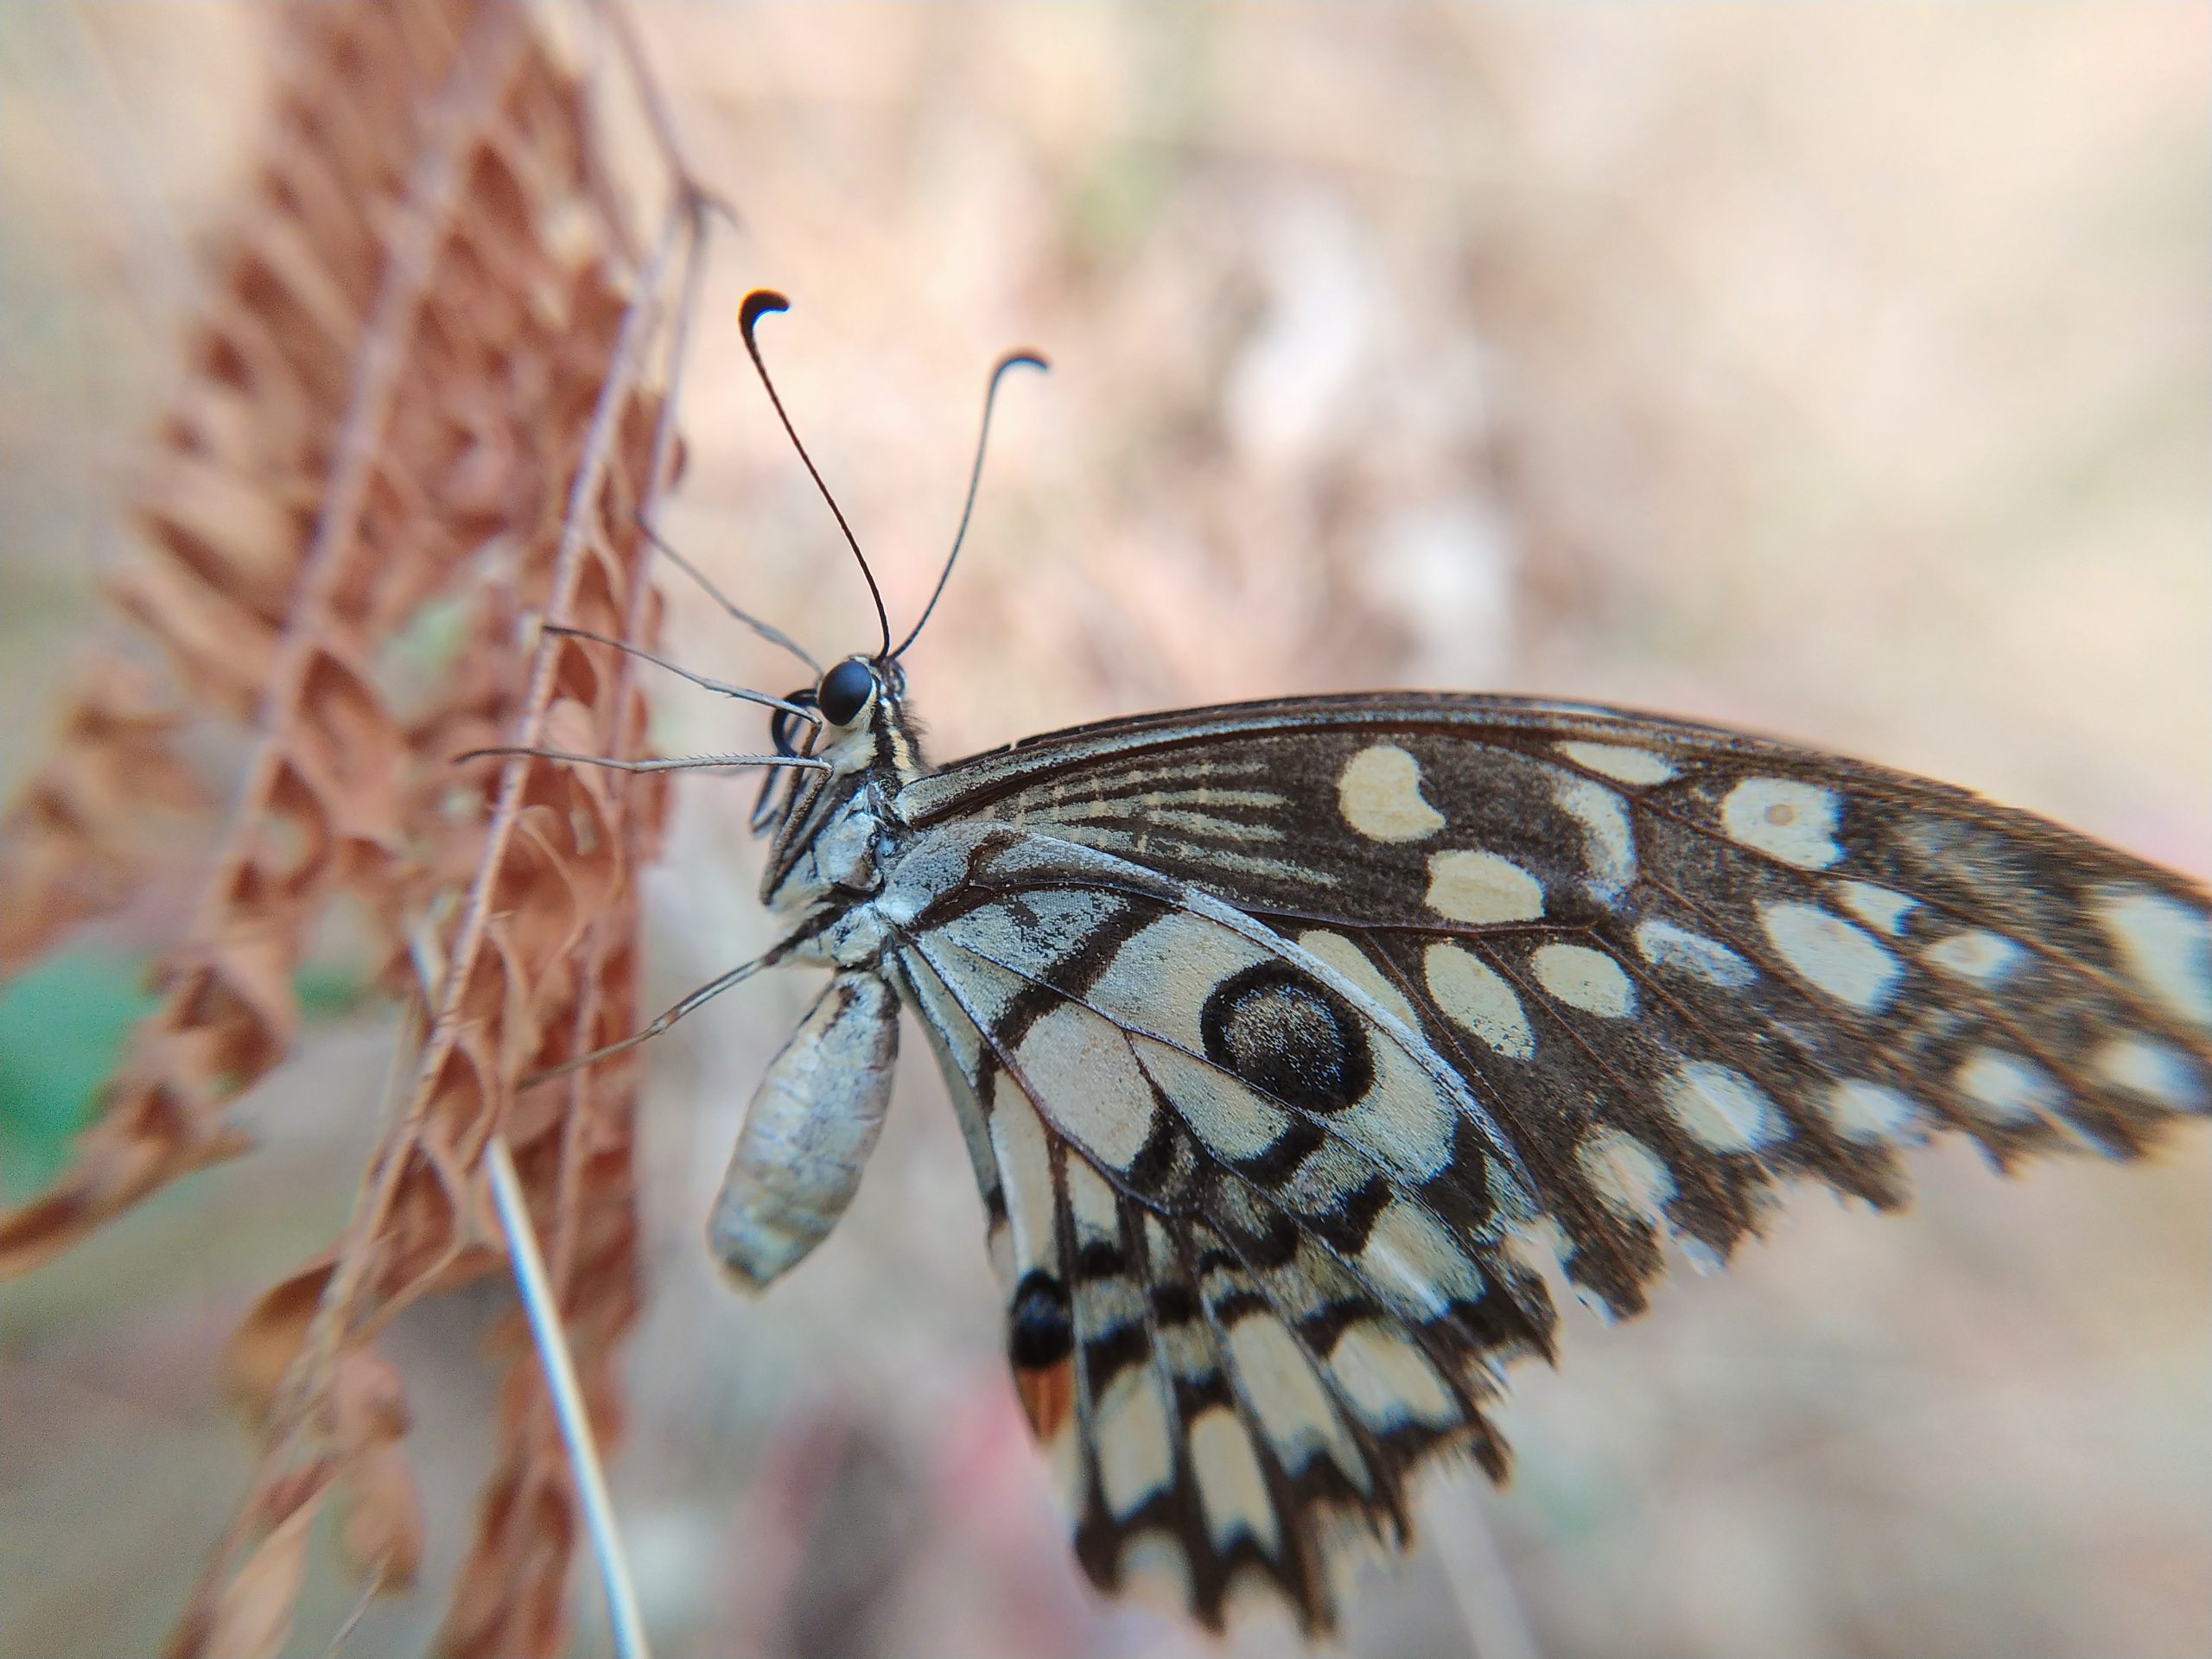 Butterfly on dry plant